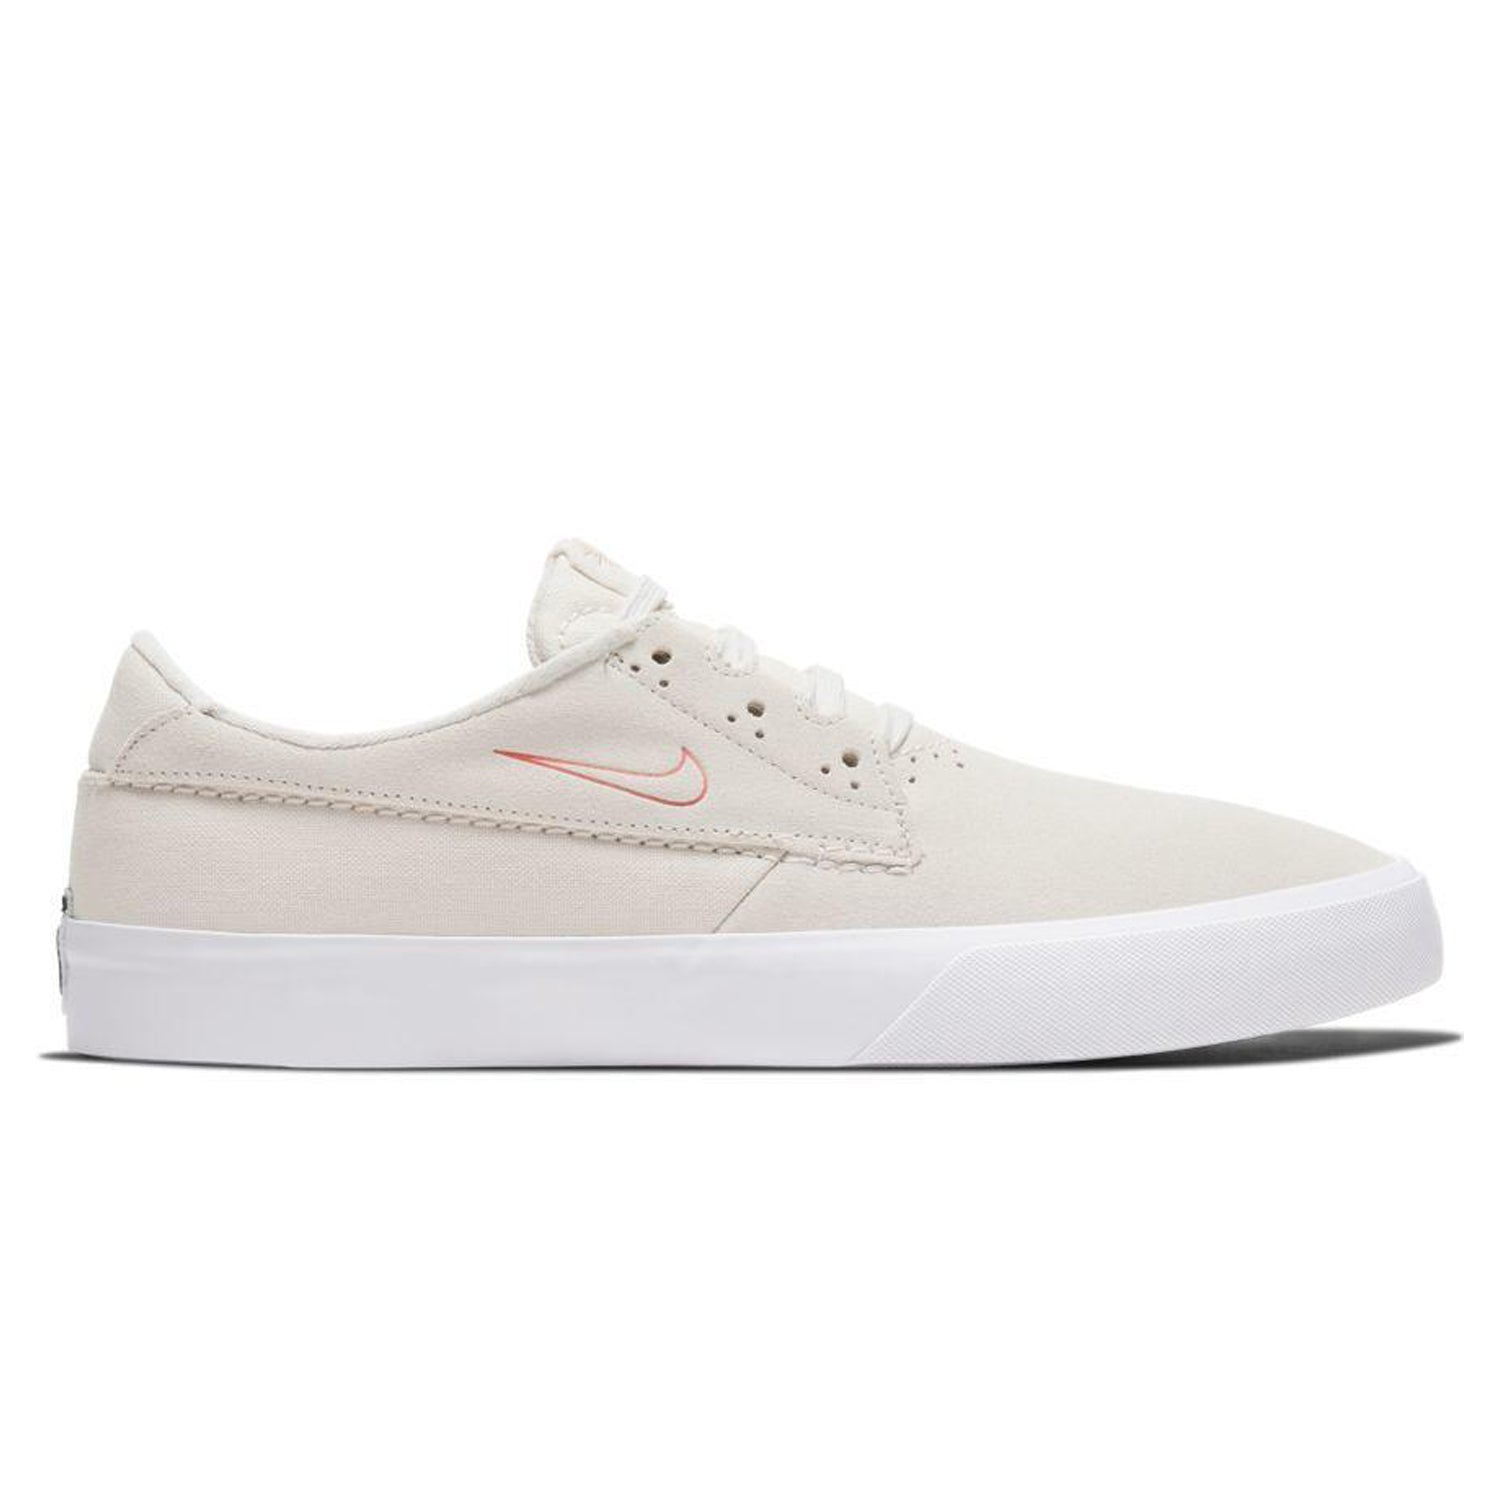 Nike SB Shane Summit White/Red